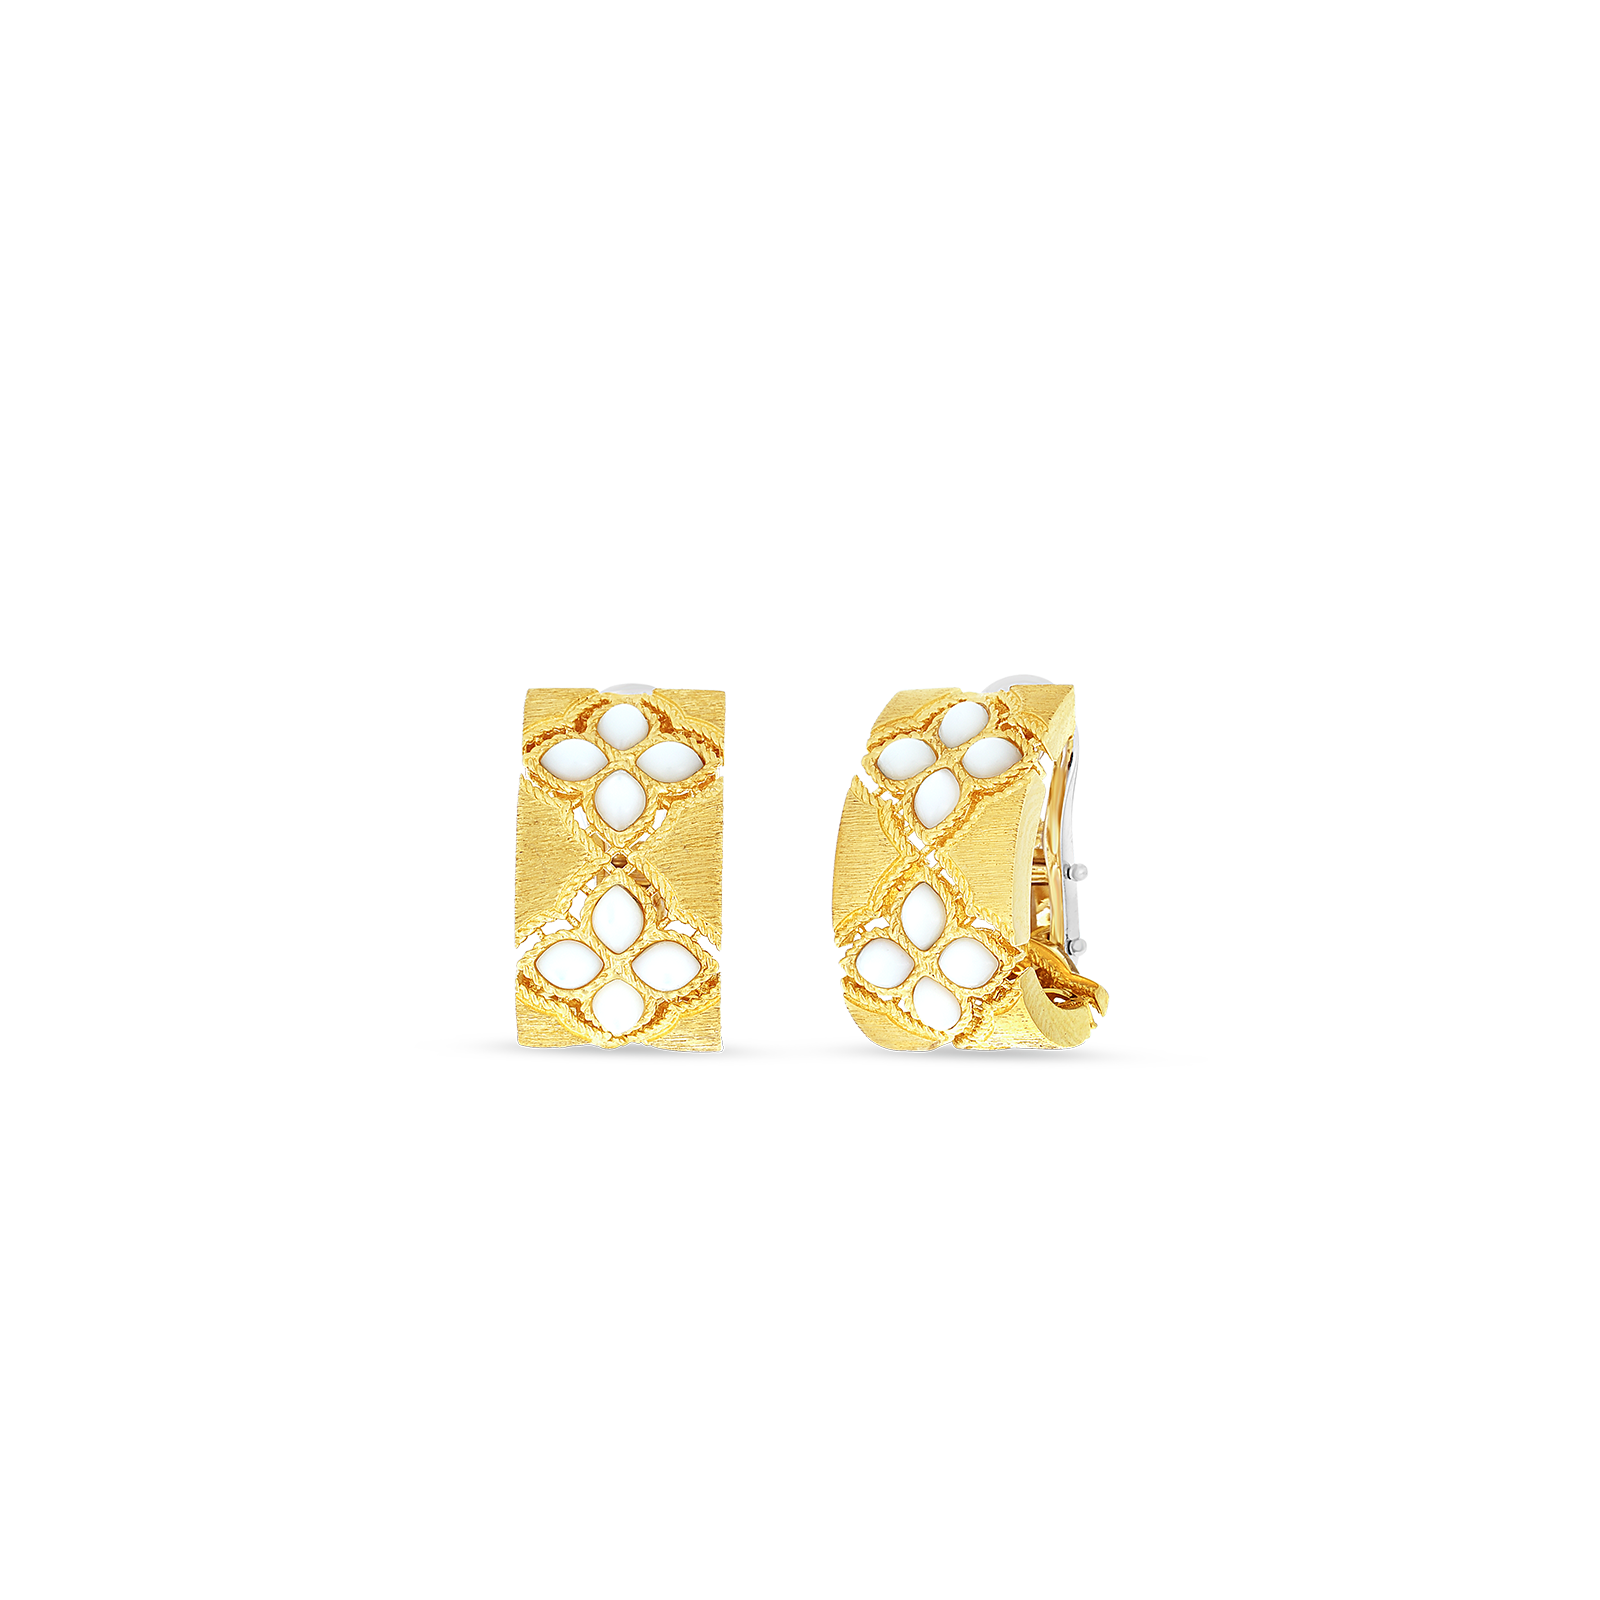 18kt gold wide mother of pearl j hoop earrings